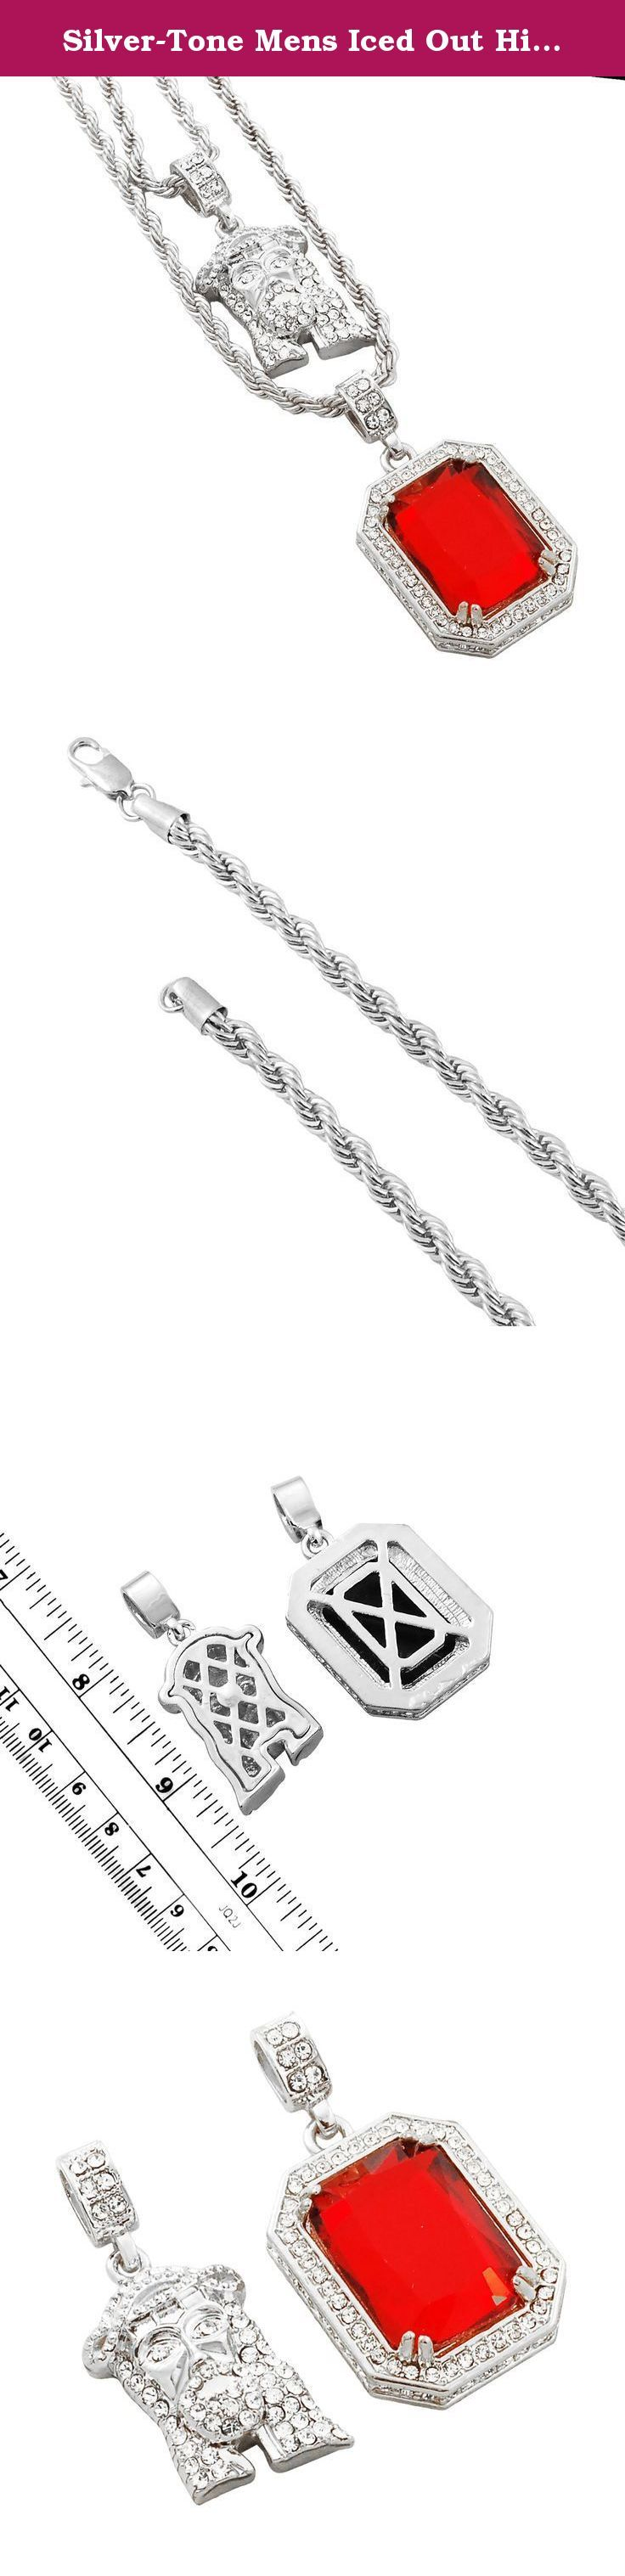 Silver-Tone Mens Iced Out Hip Hop Bling 2pcJesus Head Red Octagon Pendant Solid Rope Chain Set. Check out our selection of Hip Hop Iced out 2pc Sets. Available in our store!.